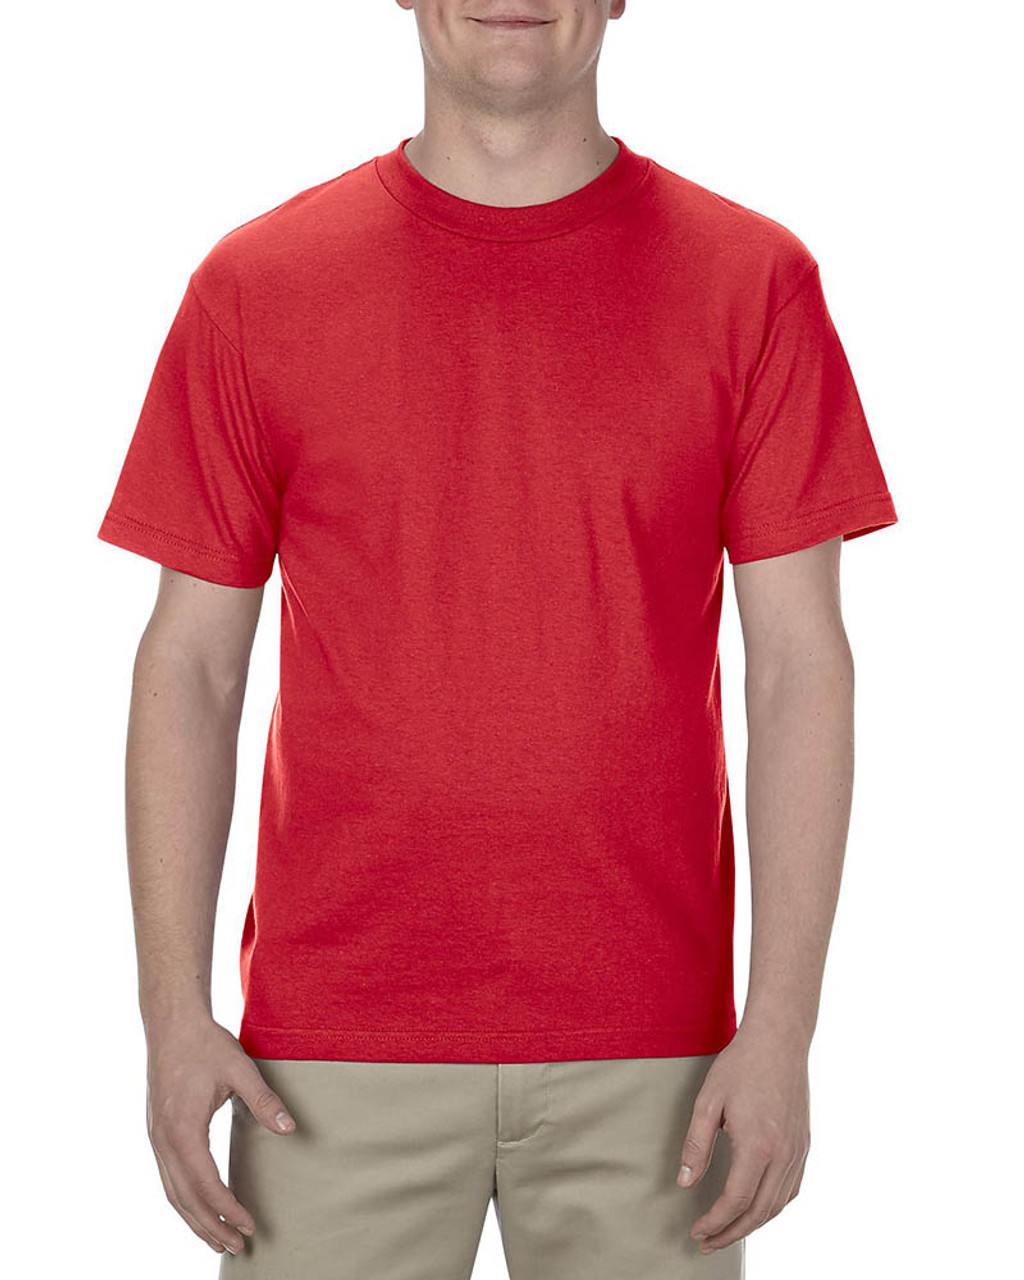 Red - AL1301 Alstyle Adult 6.0 oz., 100% Cotton T-Shirt   BlankClothing.ca